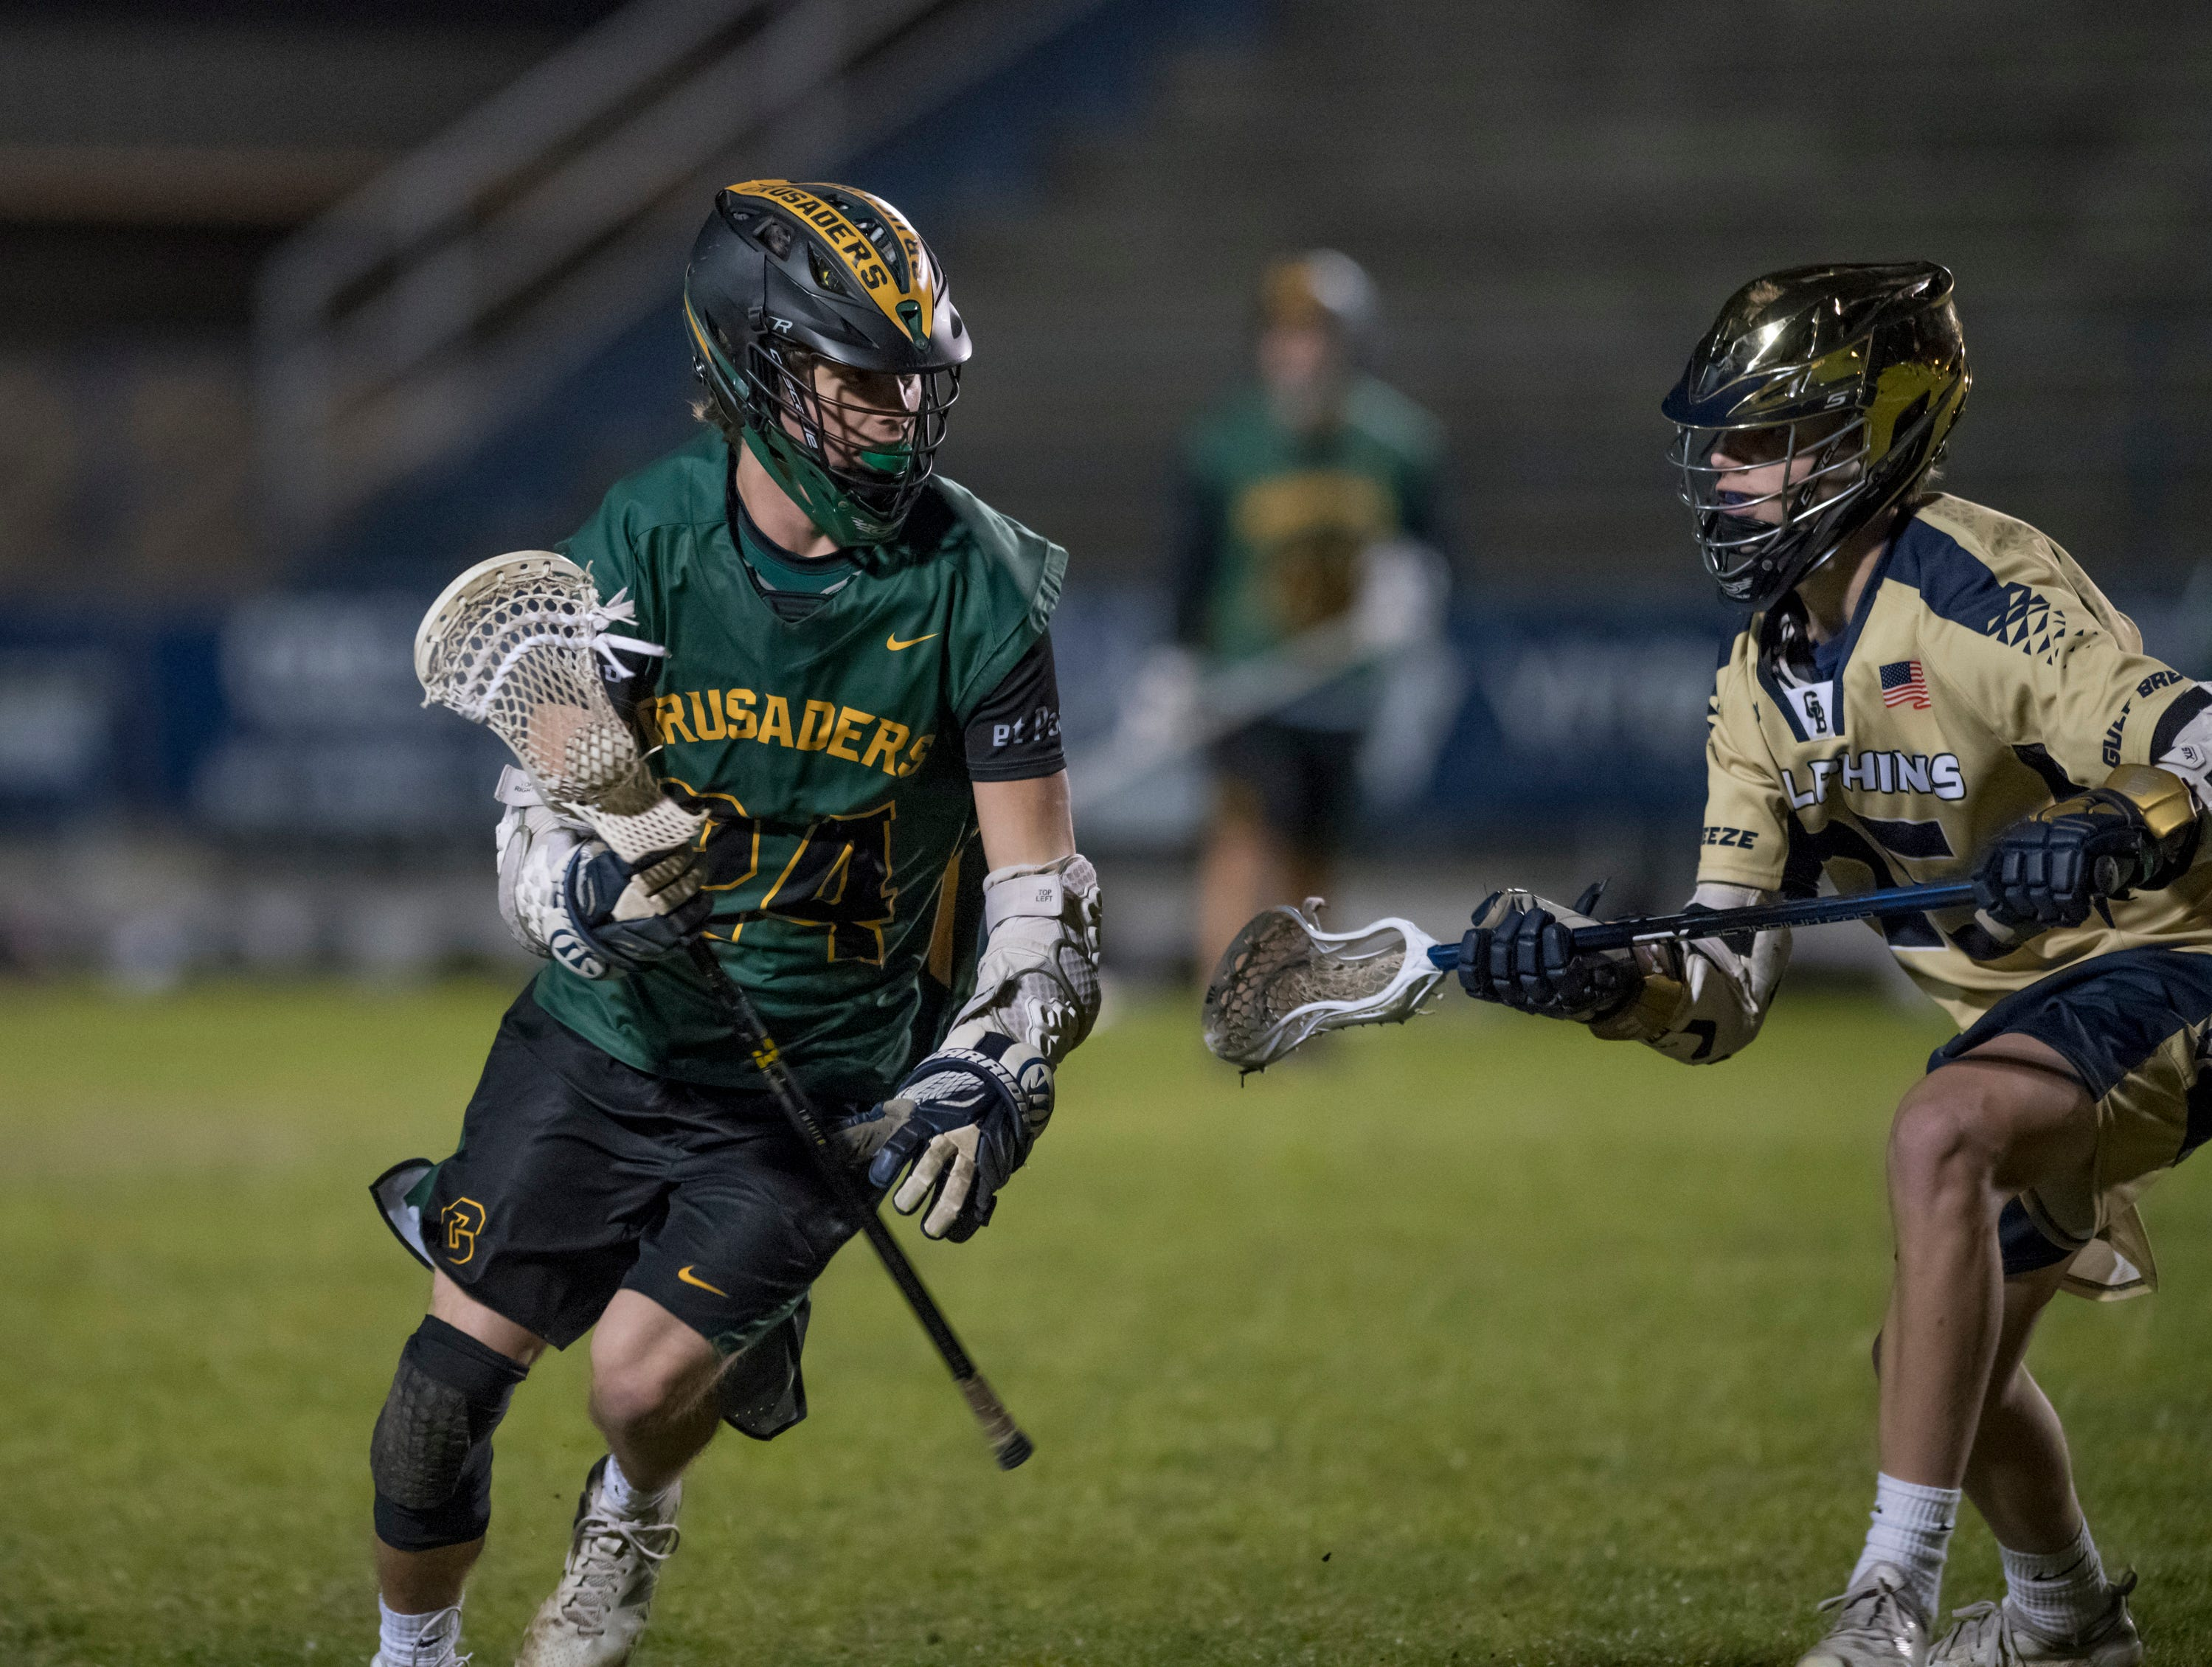 William Butler (24) controls the ball during the Catholic vs. Gulf Breeze boys lacrosse game at Gulf Breeze High School on Wednesday, March 6, 2019.